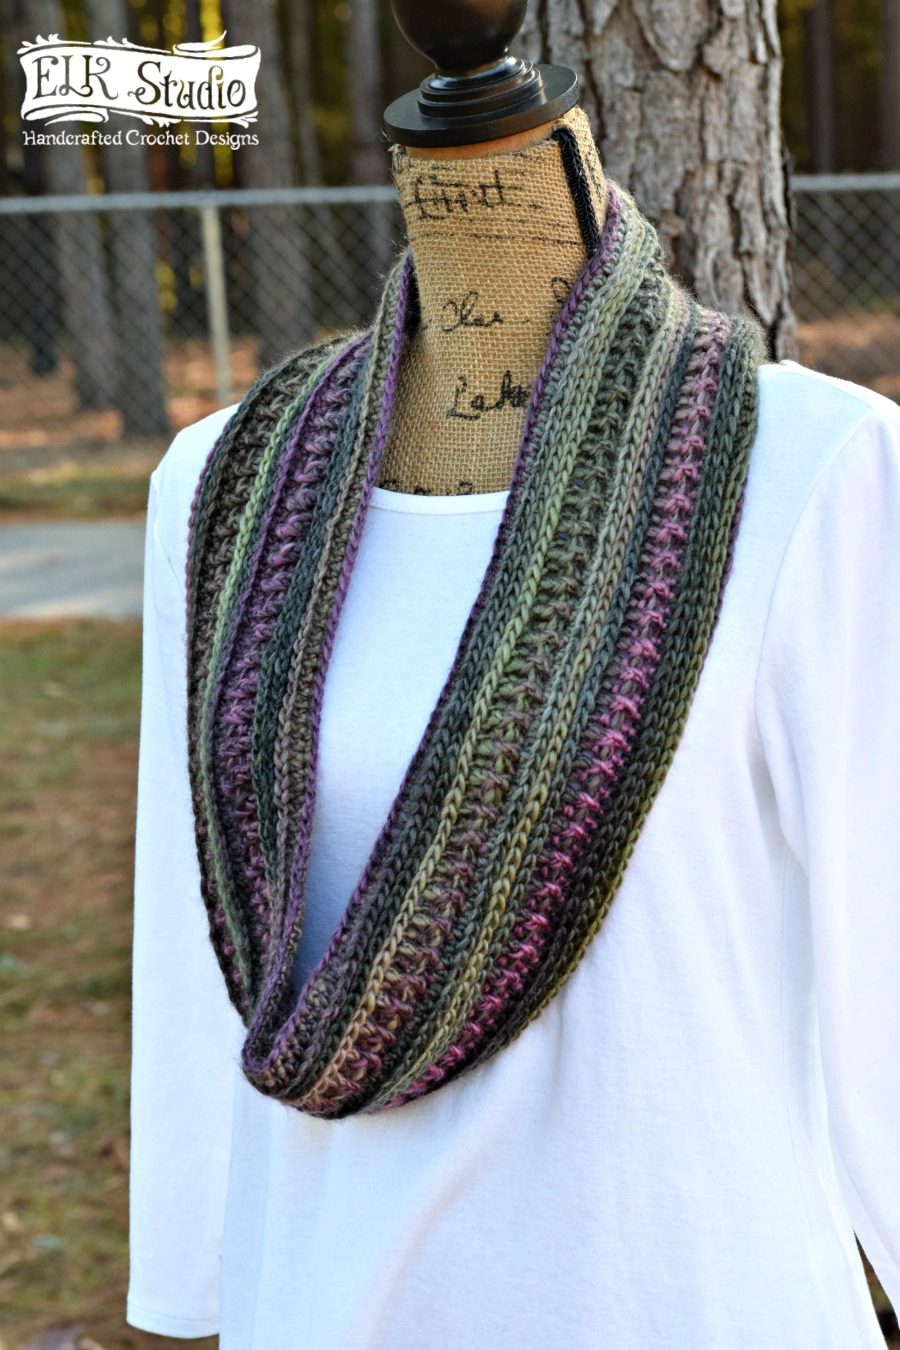 Dakotah's Fabulous Scarf by ELK Studio